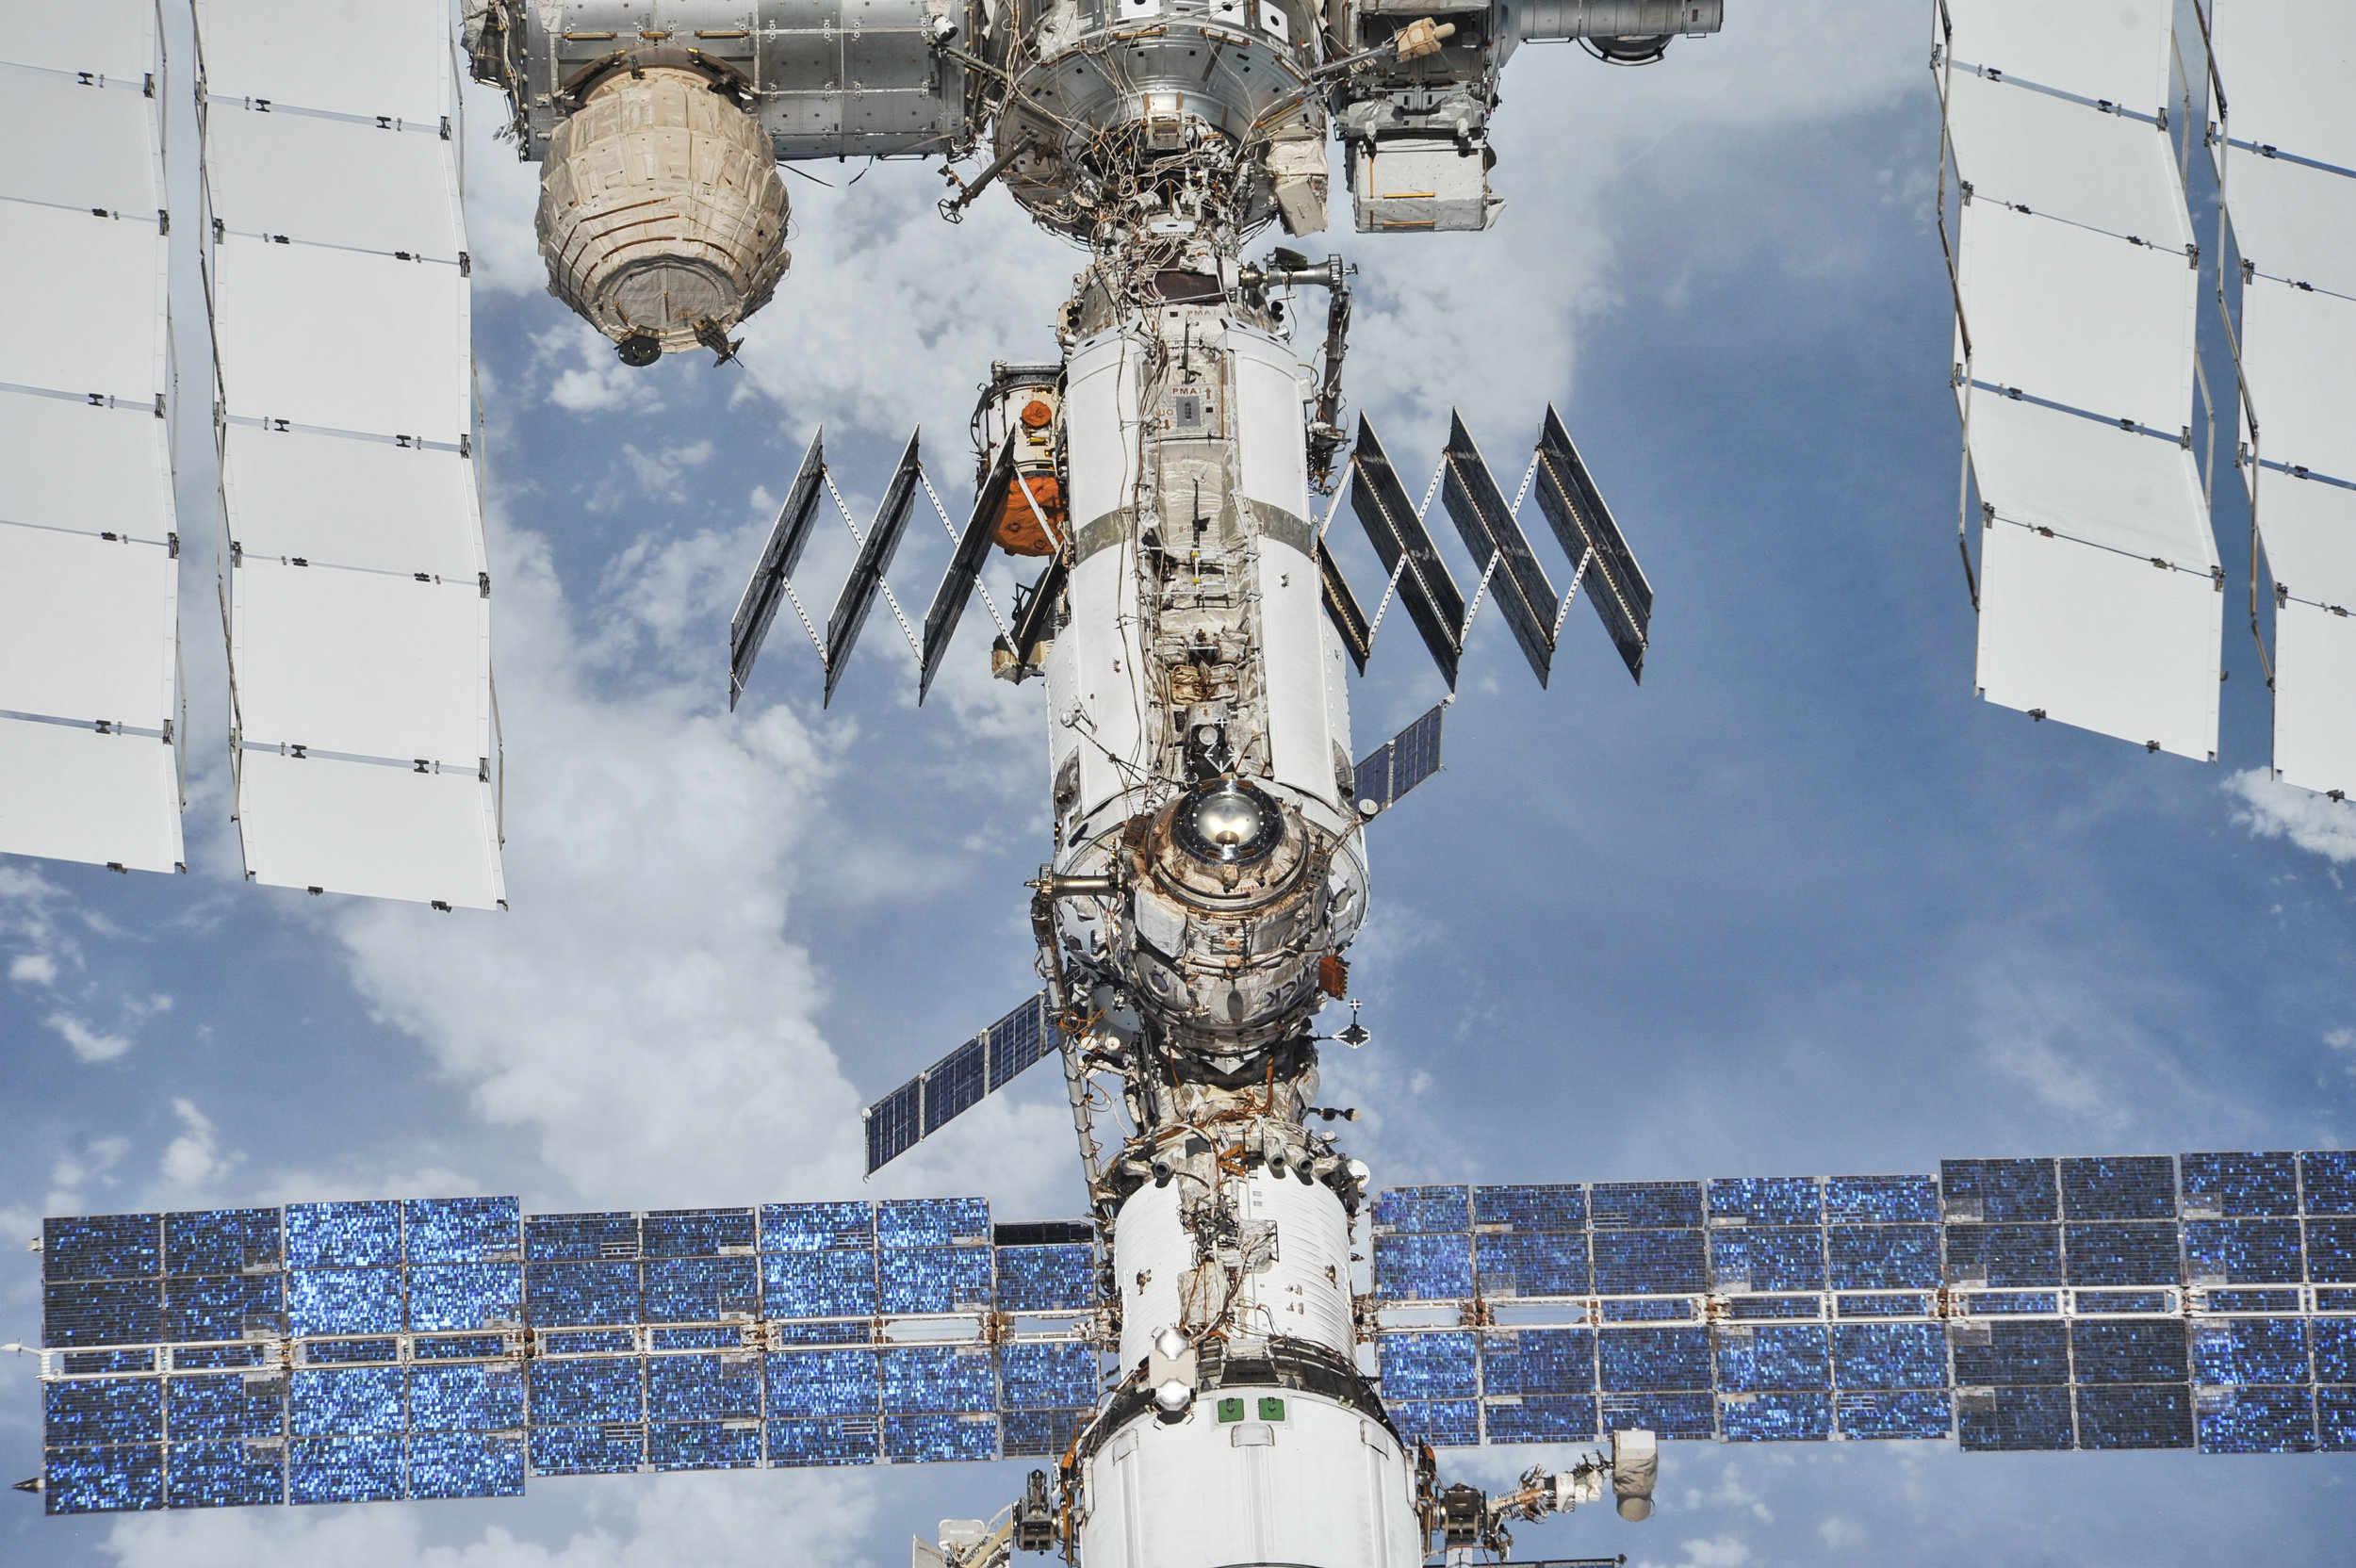 the-international-space-station-as-of-oct-4-2018_44722263875_o.jpg